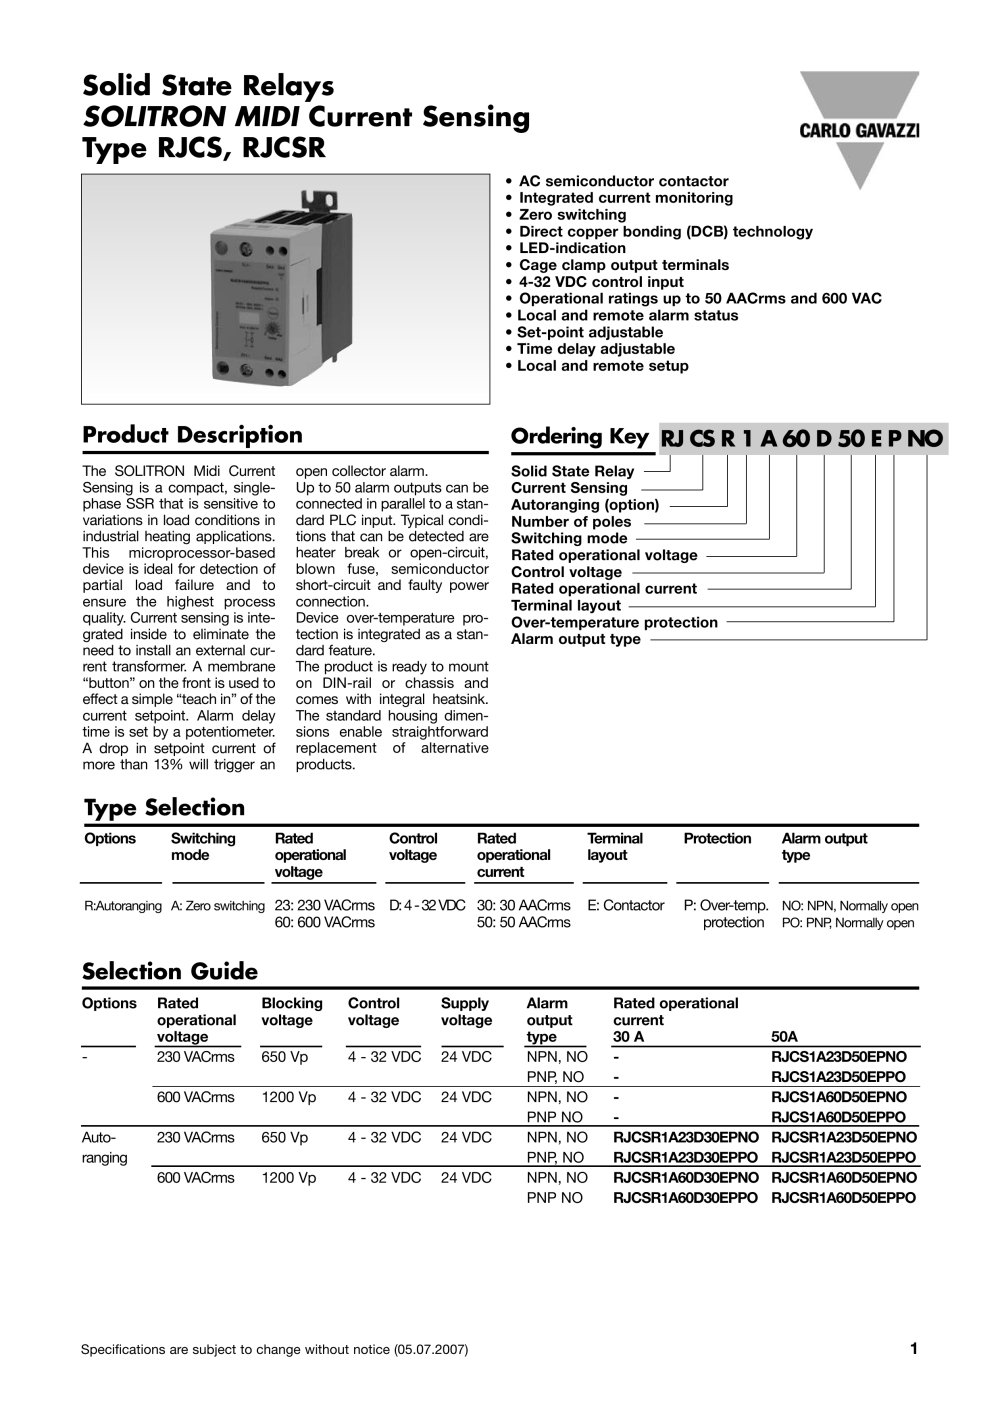 Solid State Relays Rjcs1a23d30epno Carlo Gavazzi Pdf Catalogs Basic Of Relay 1 7 Pages